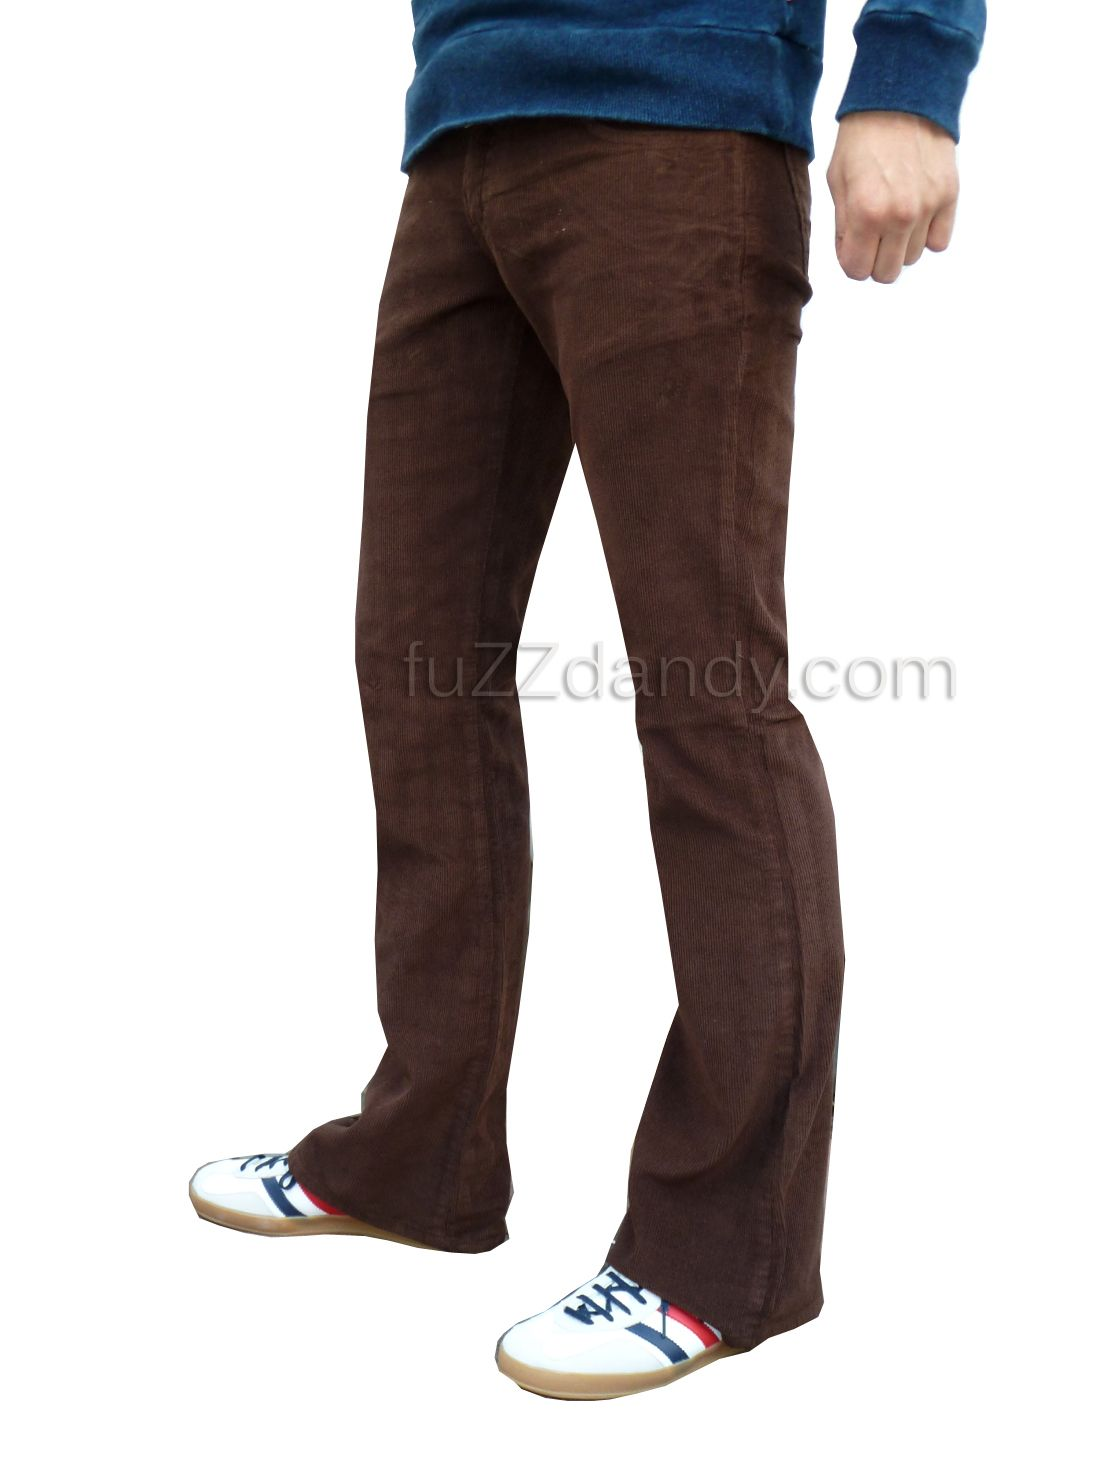 Our plus size stretch corduroy jeans have all the features of a classic: 5 pockets, back yoke, metal rivets, zip fly. All that and in a comfortable bootcut.